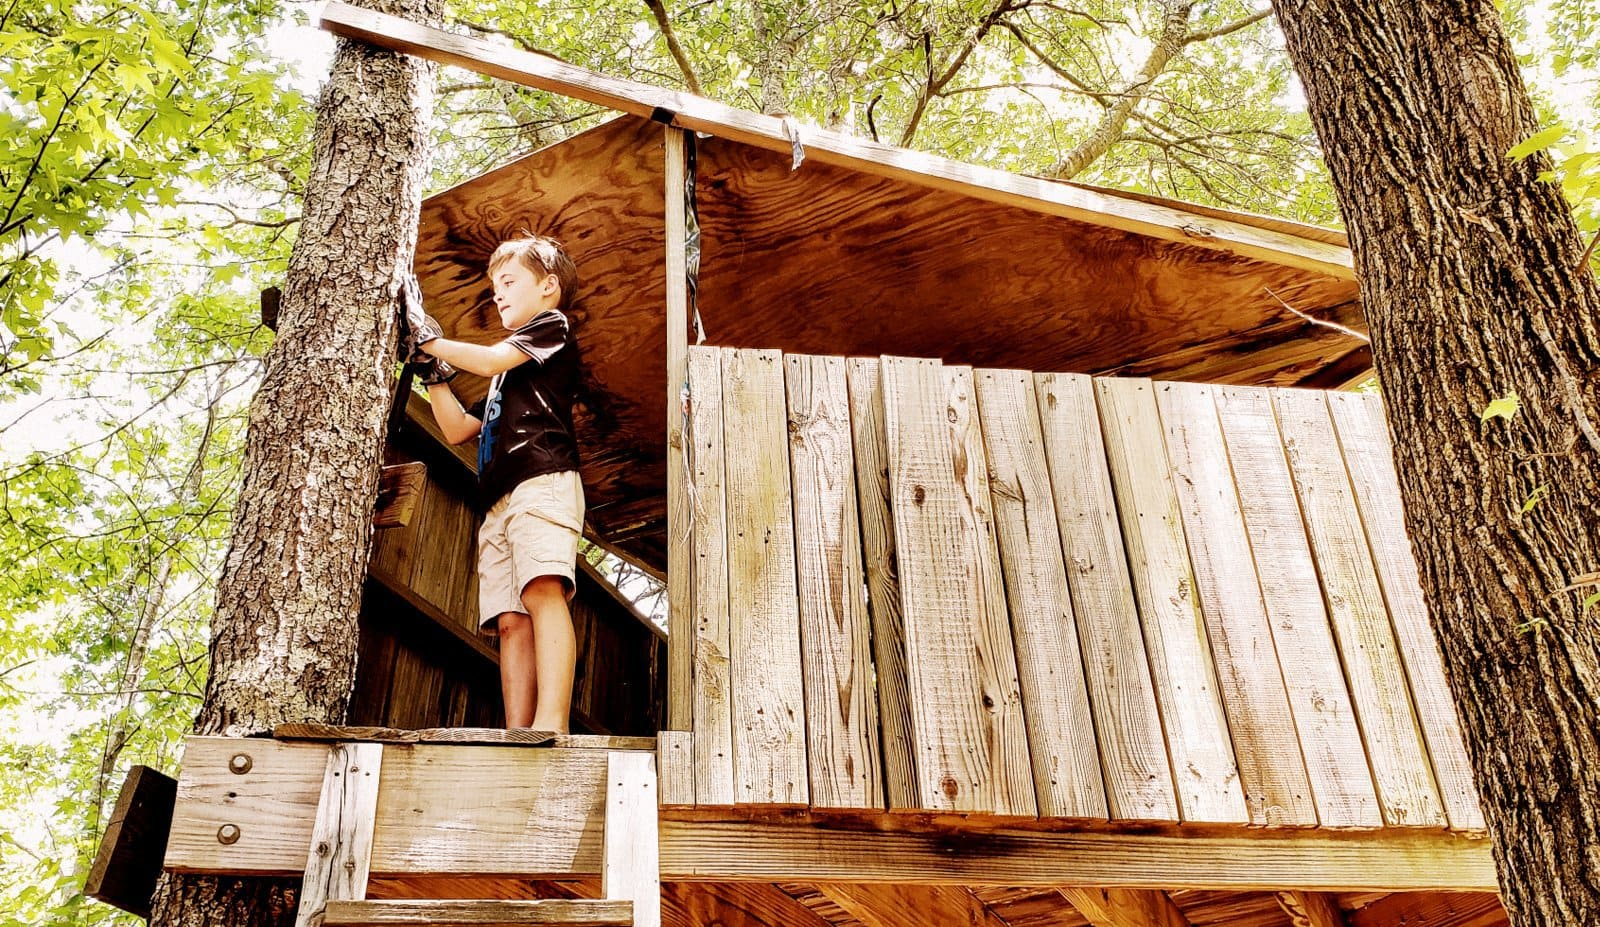 Young boy working on an old-fashioned wooden treehouse fort